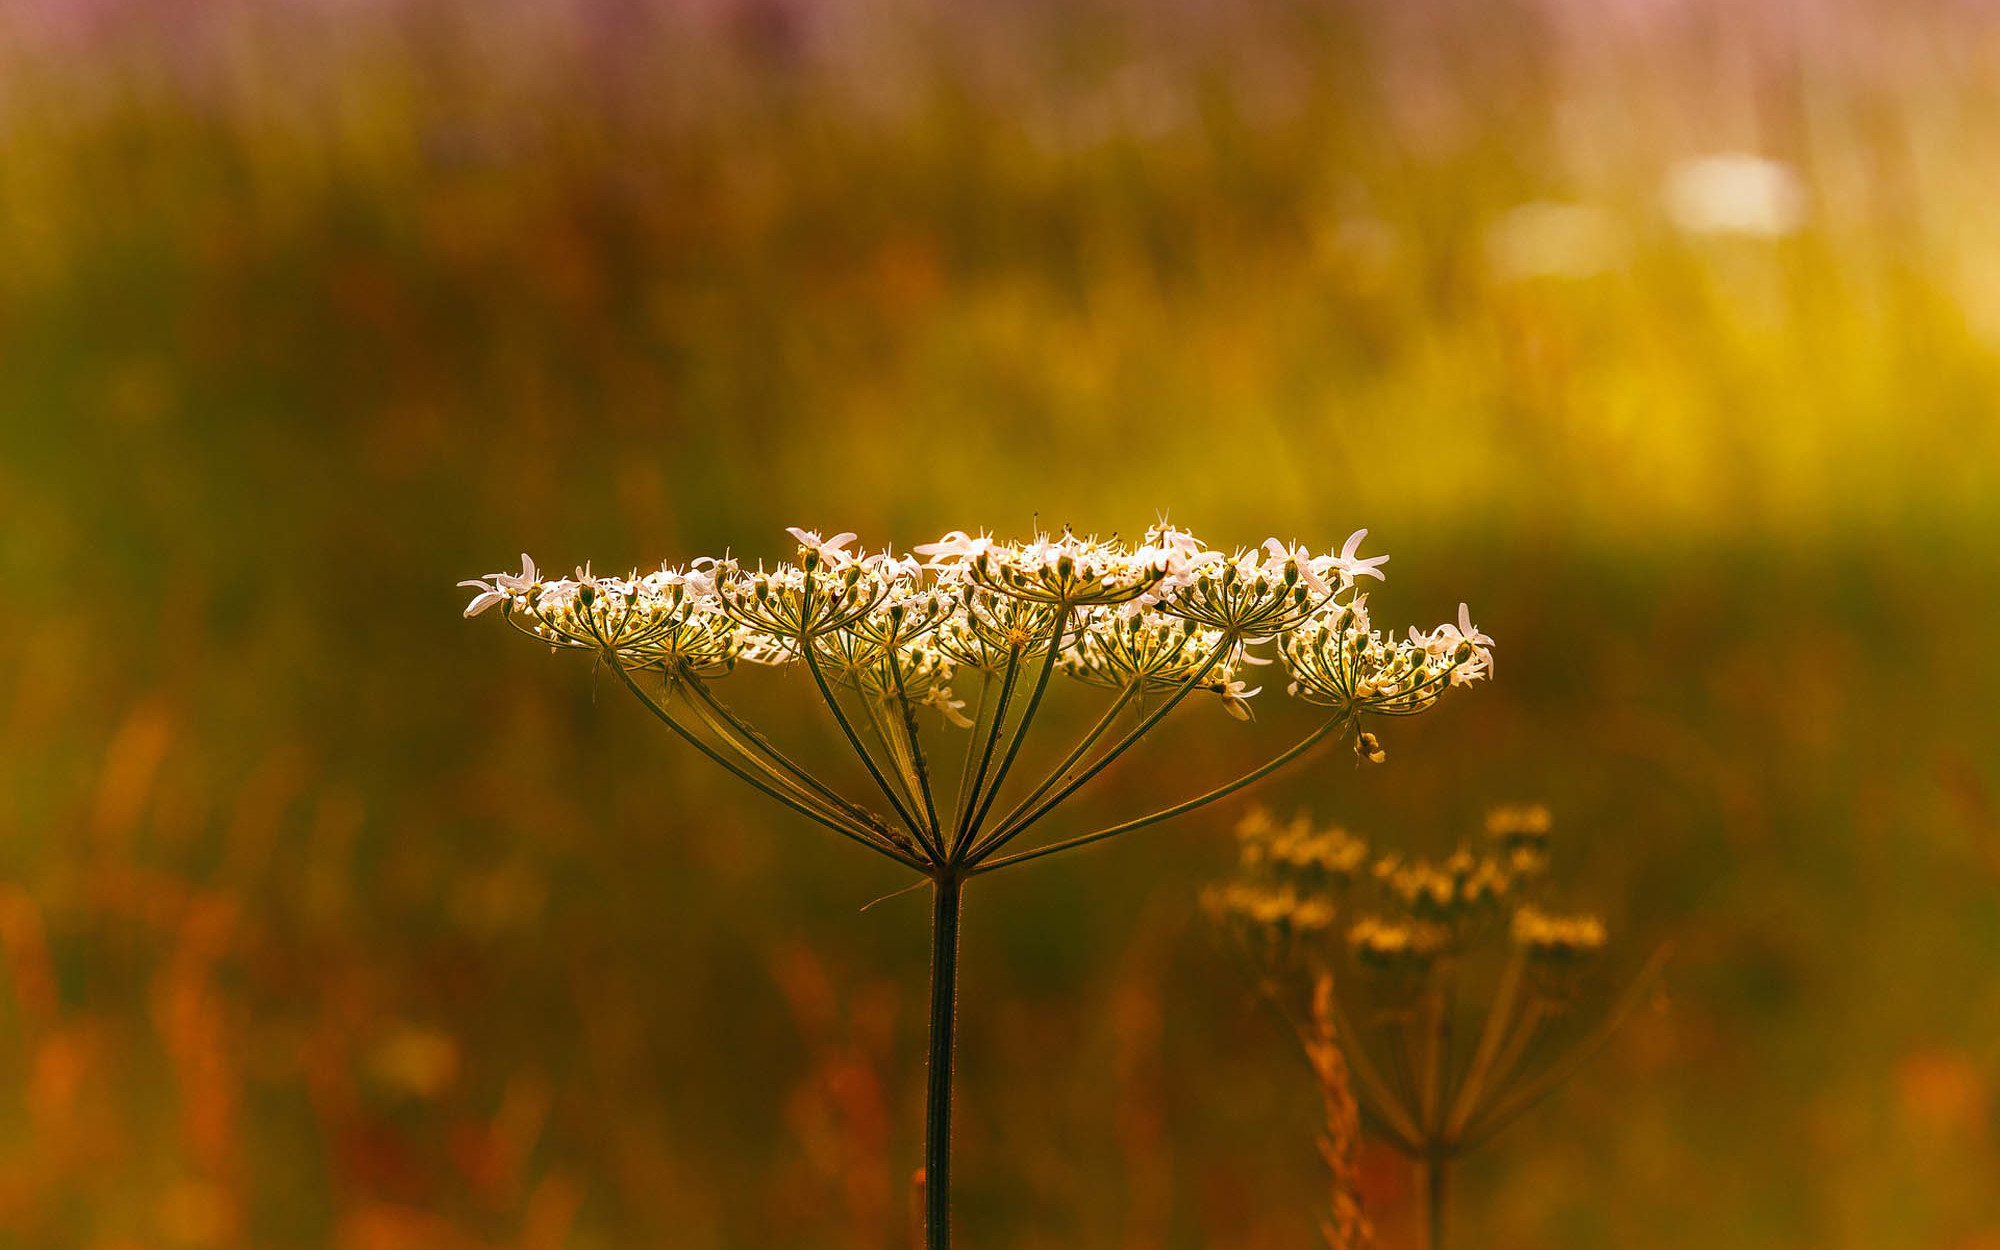 Dr-Matthias-Frank_Hausarzt_Home_cow-parsley-3999570_1920.jpg